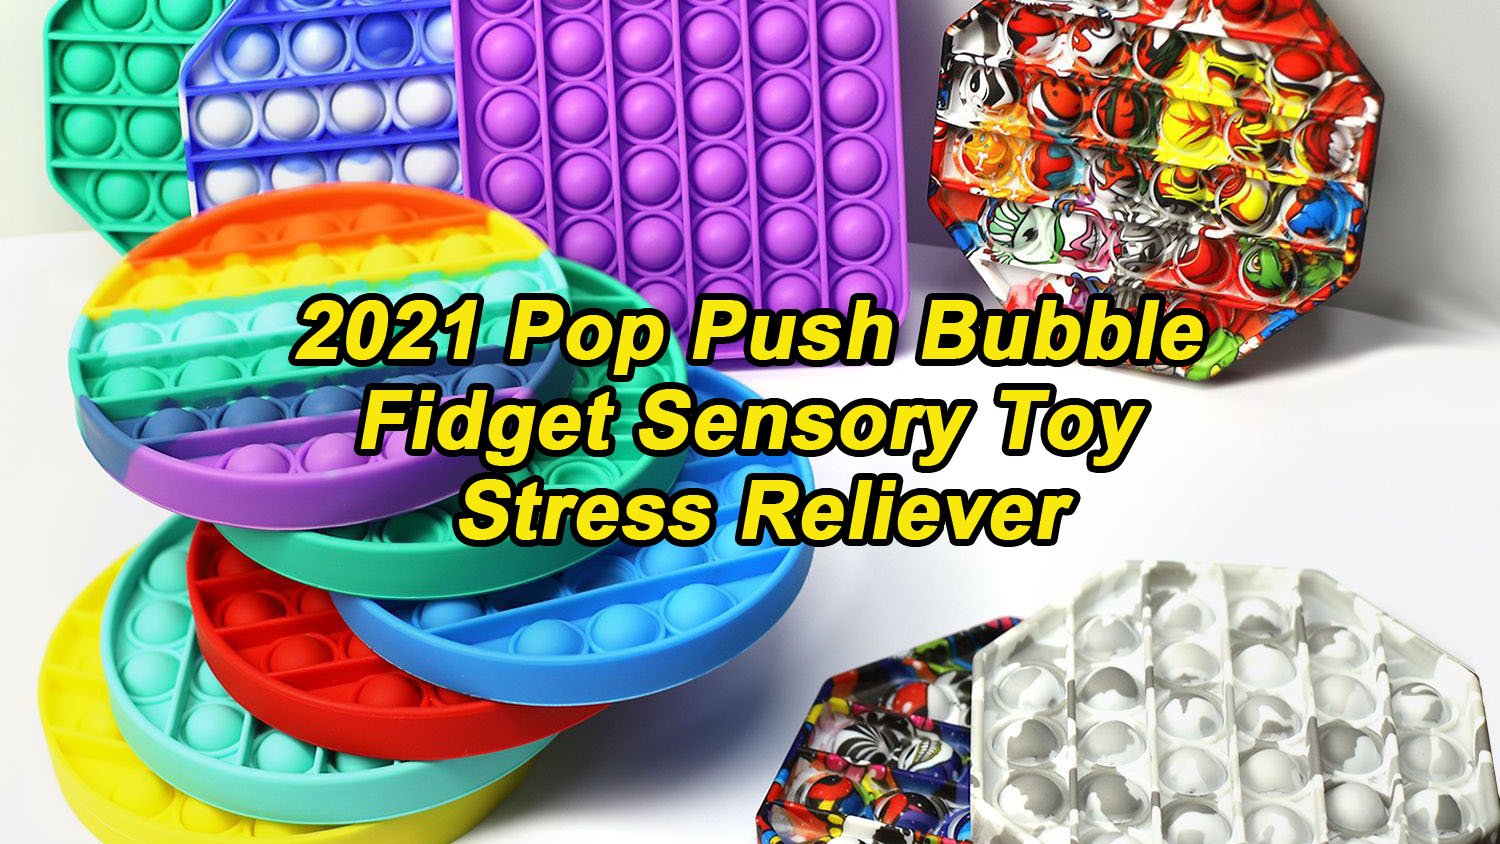 2021 POP Push Bubble Fidget Sensosy Toy Site Reliver